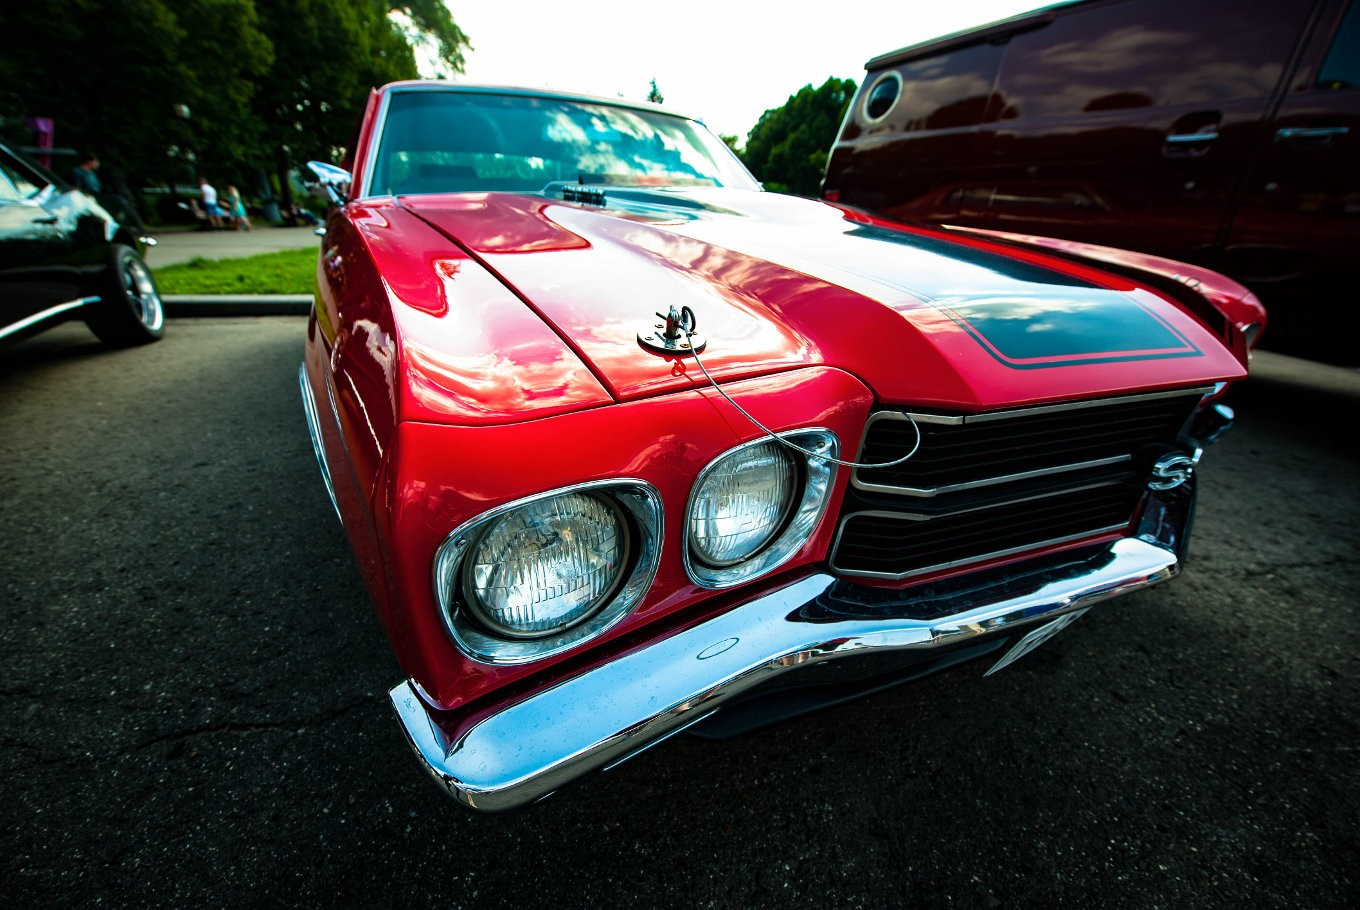 East Java transport museum adds new US 'muscle' to car